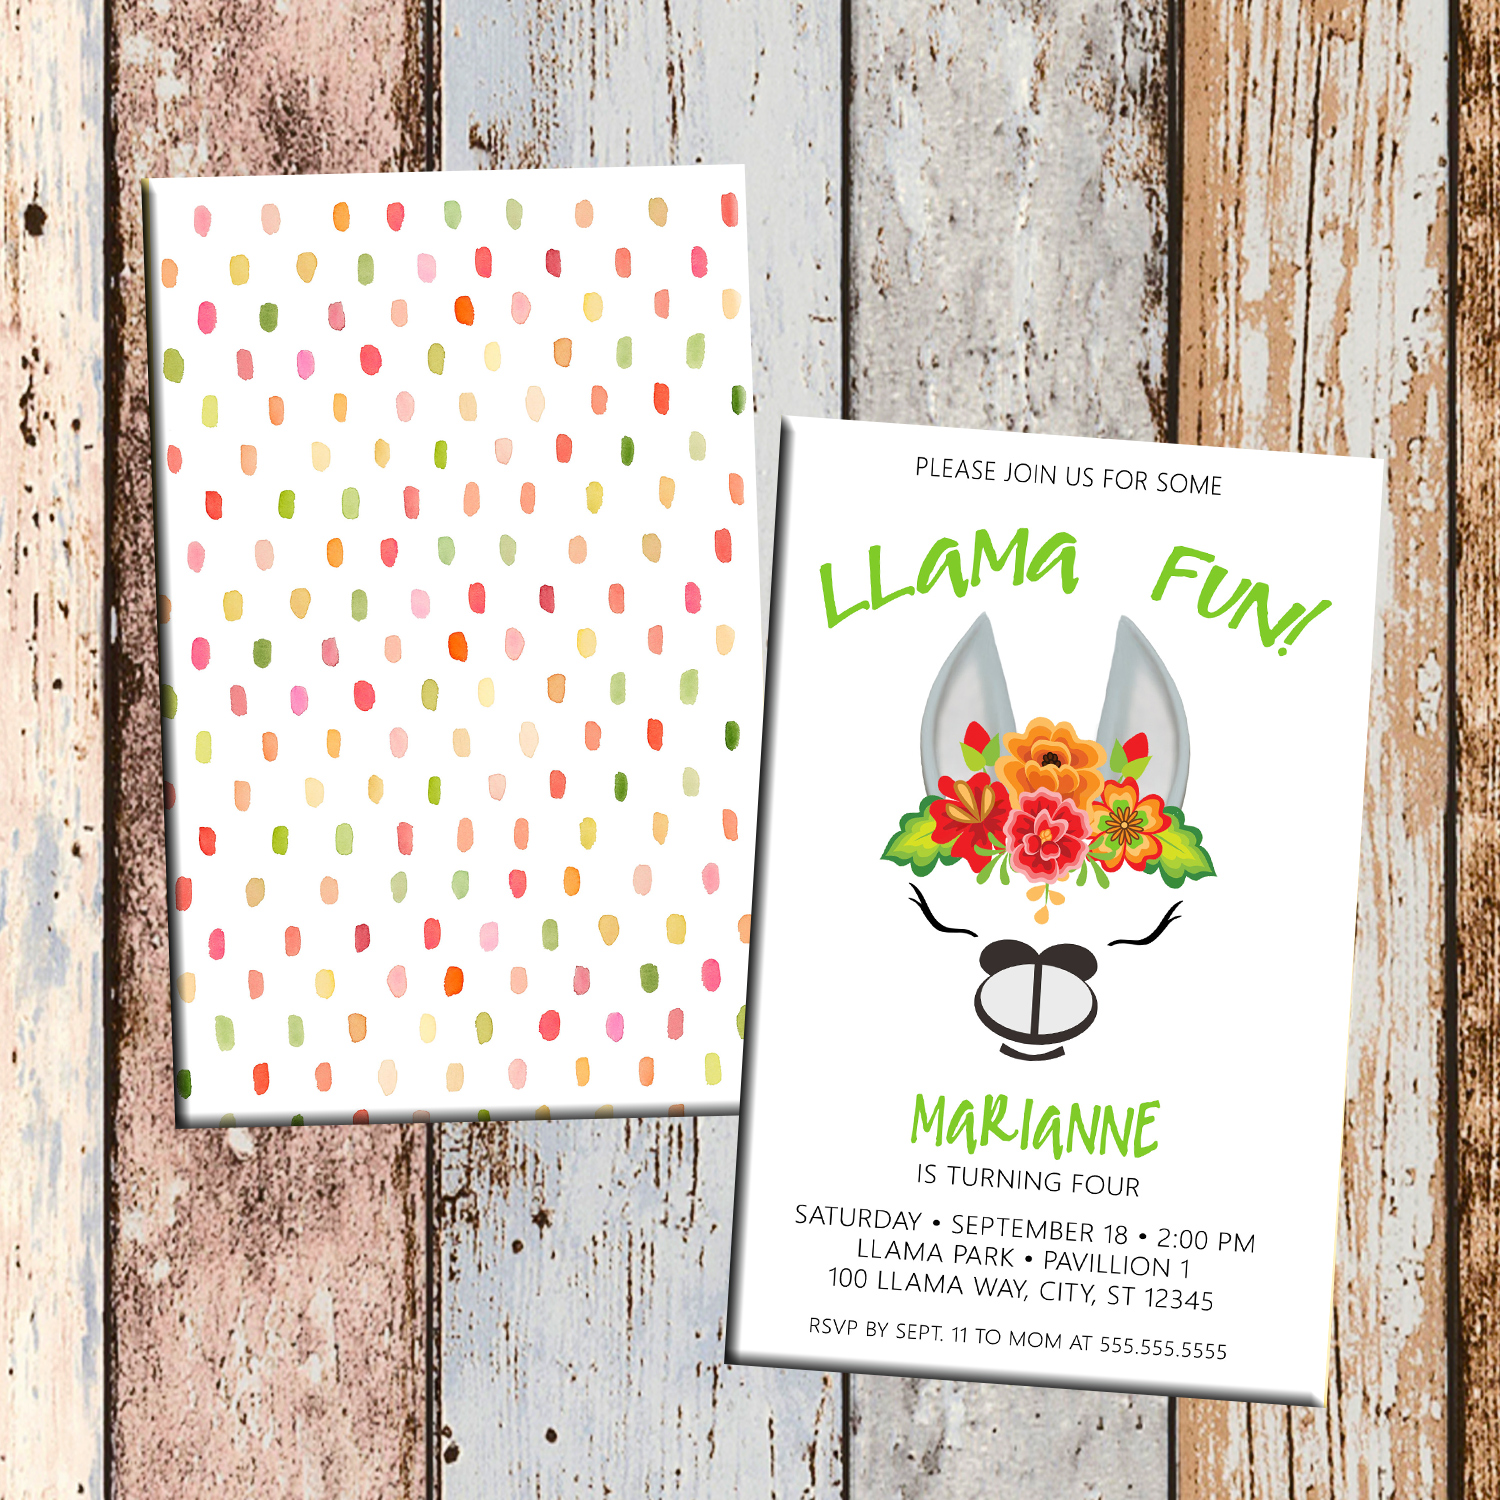 Llama Fun Alpaca Personalized Birthday Invitation 2 Sided Card